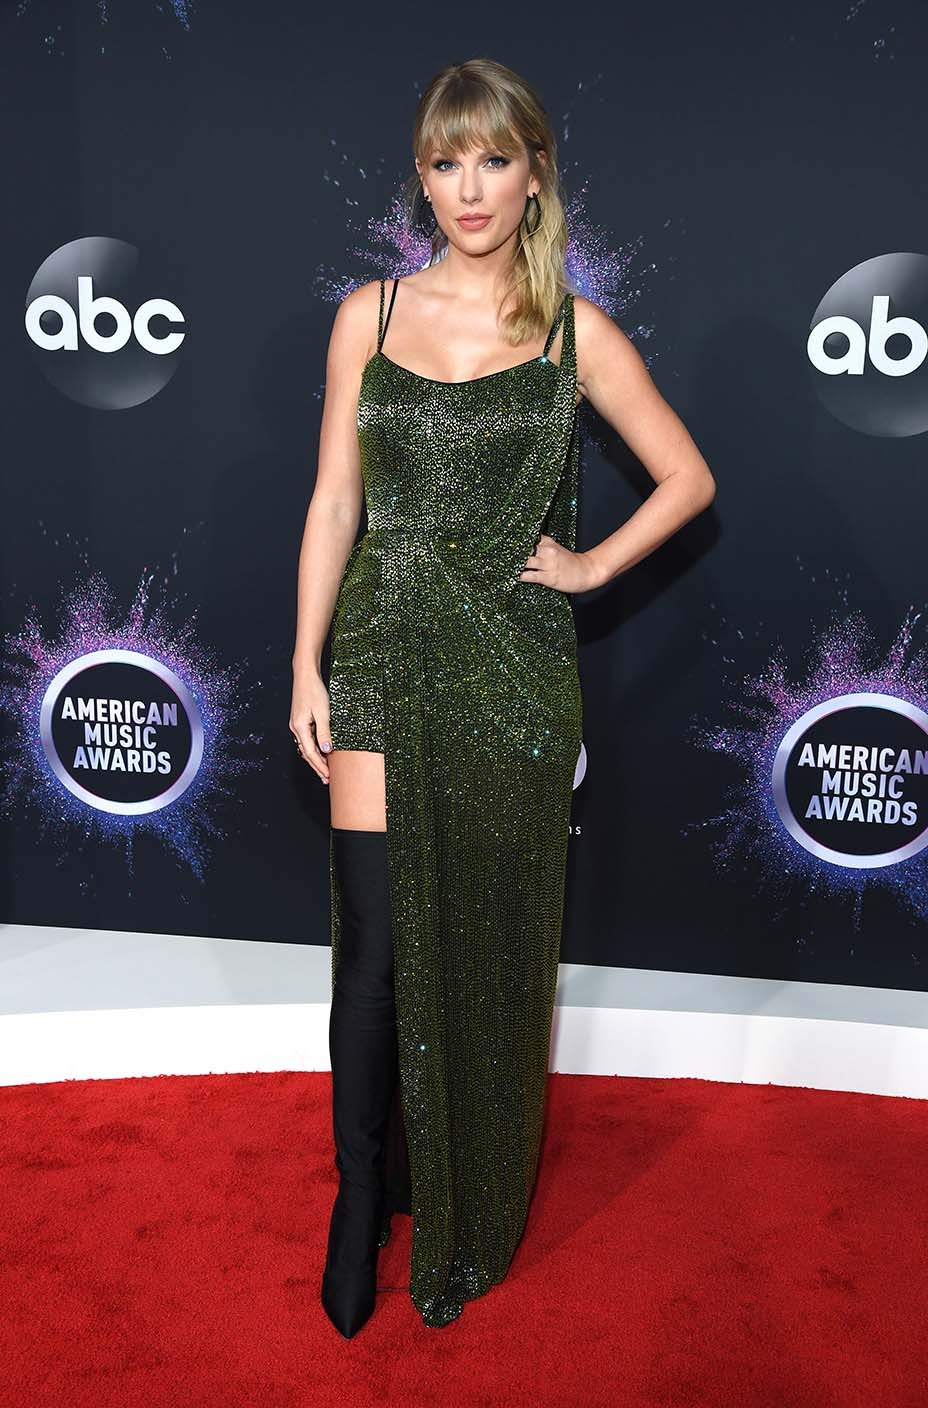 2019 American Music Awards - Red Carpet